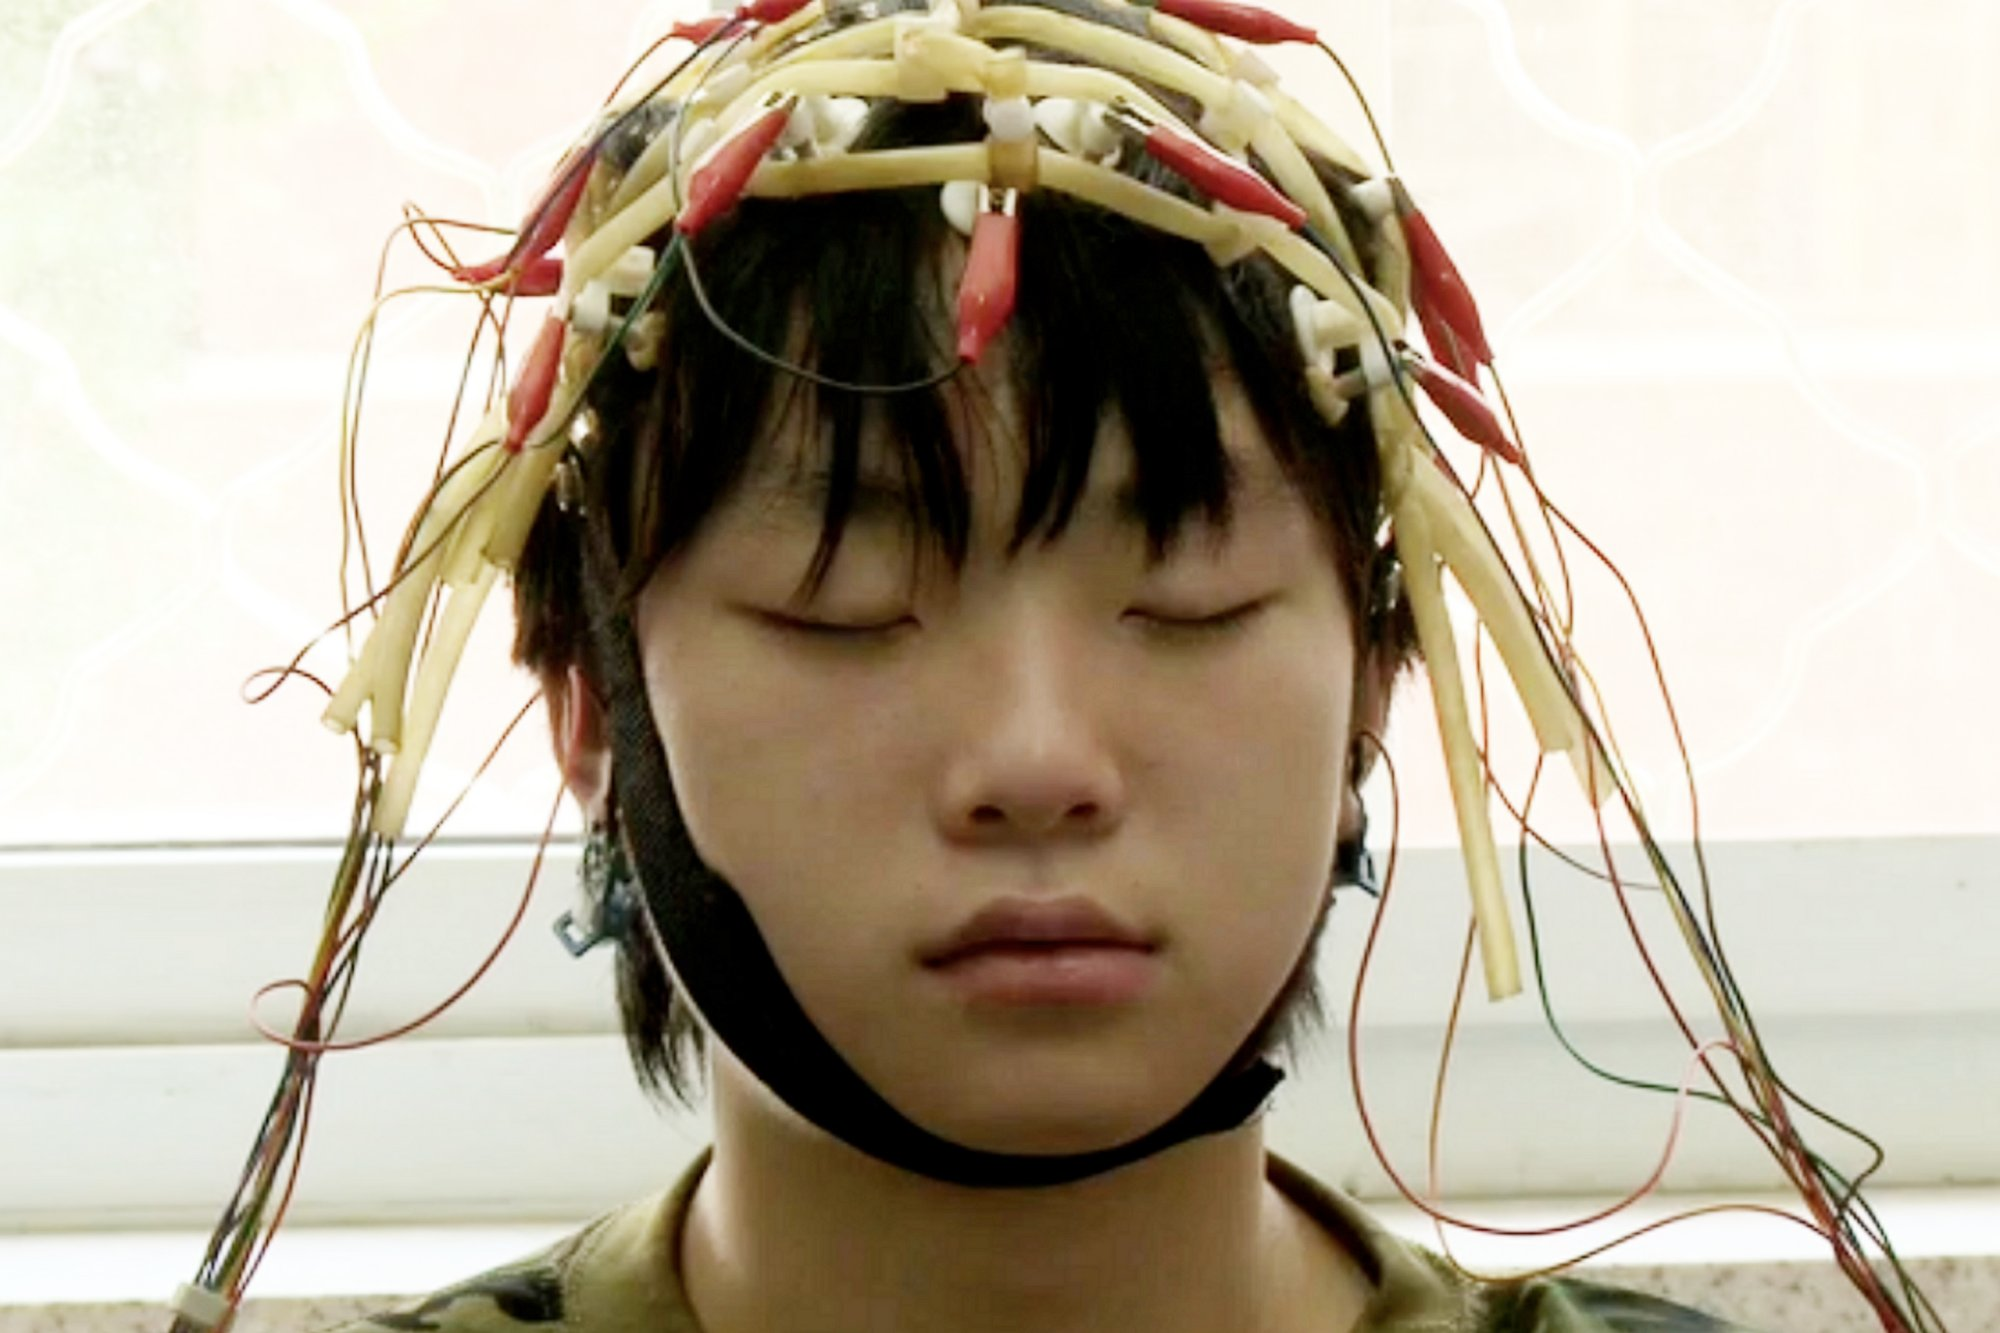 A scene from the movie Web Junkie, shown at the 2014 Sundance Film Festival, which explores Internet addiction in China.